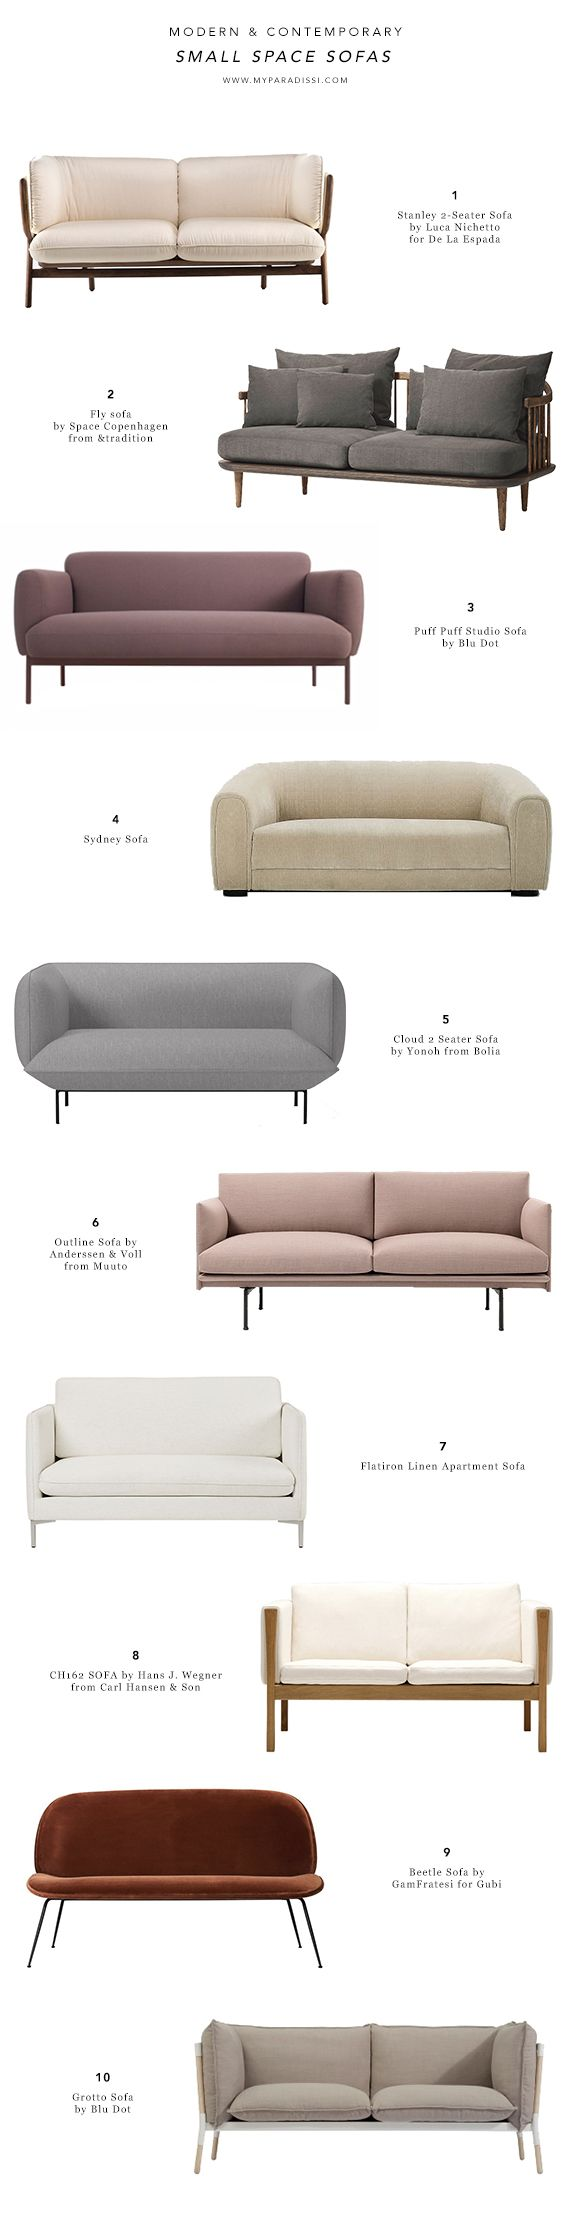 10 Best Contemporary Small Space Sofas Sofas For Small Spaces Small Sofa Designs Contemporary Living Room Furniture